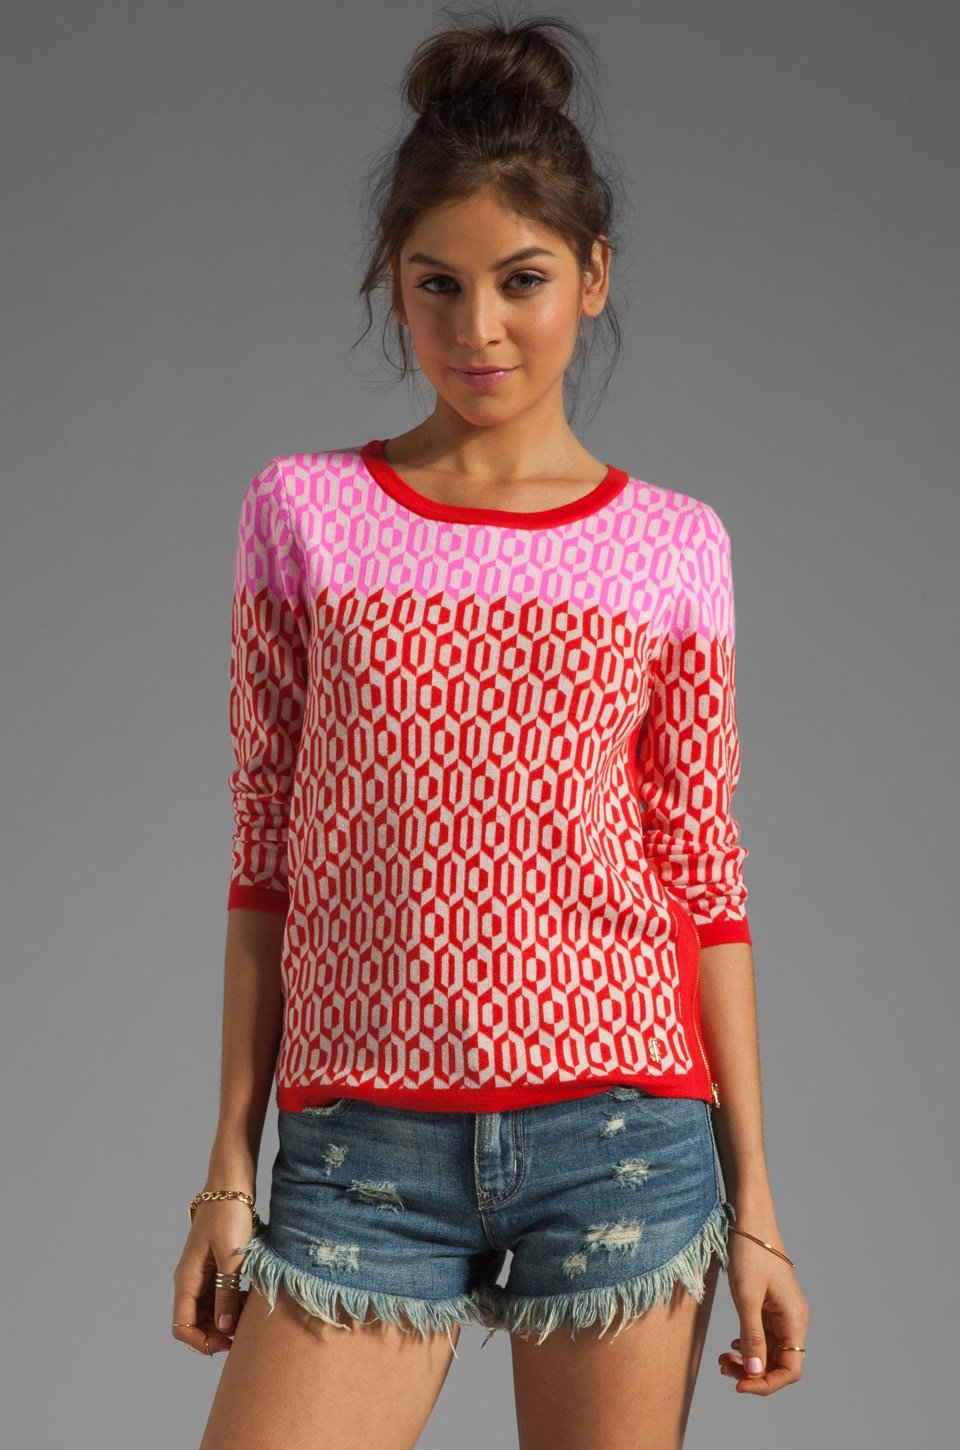 Juicy Couture Aquarius Geo Pullover in Siren/Mademoiselle